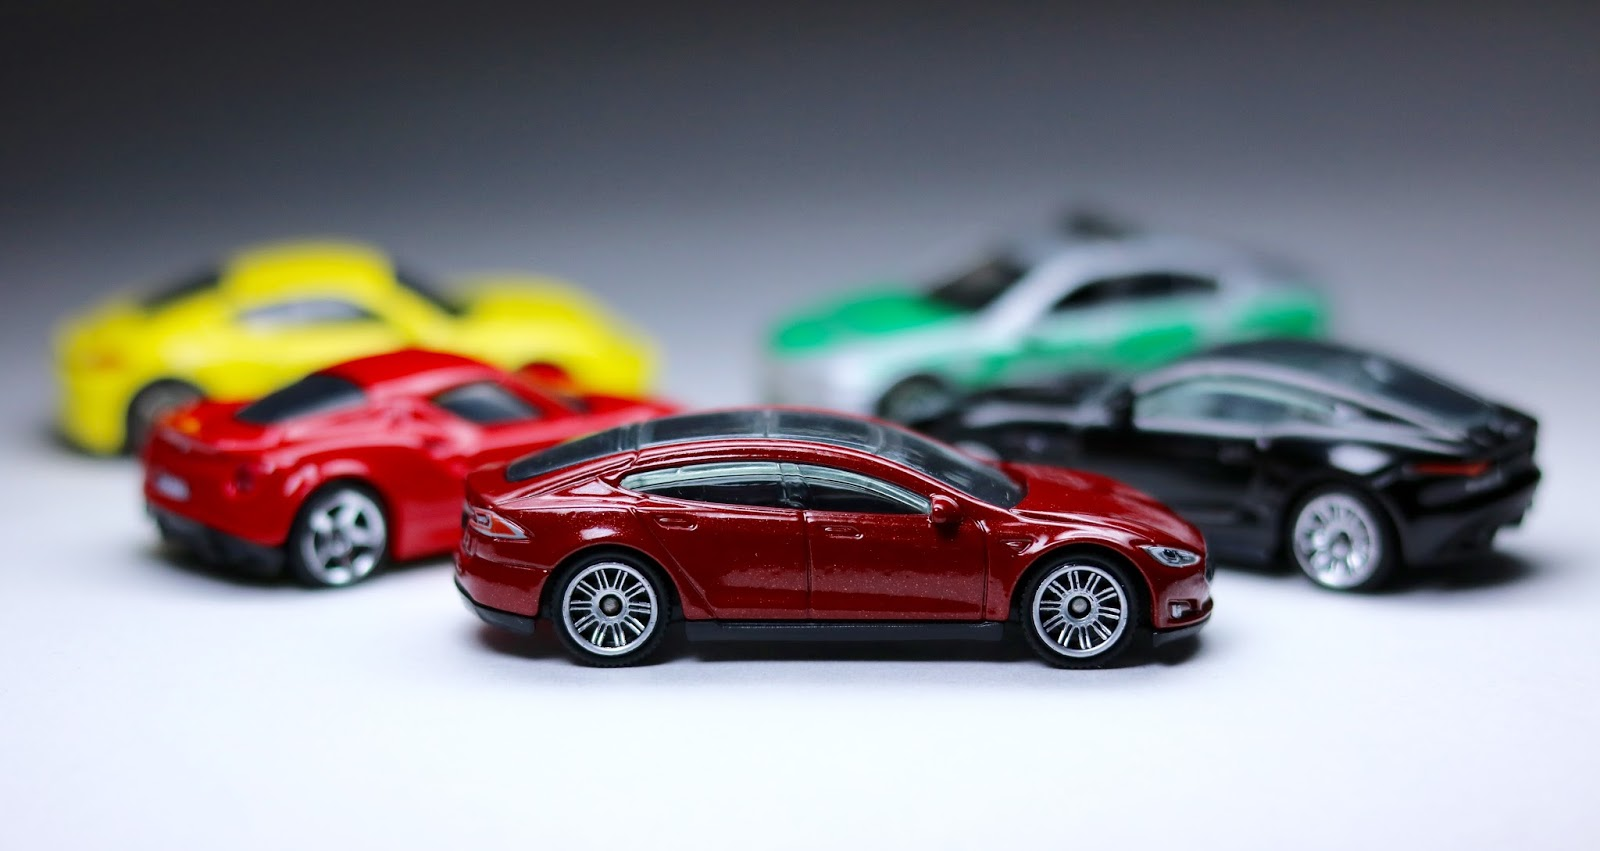 List Of Of 2015 Matchbox Cars | Autos Post